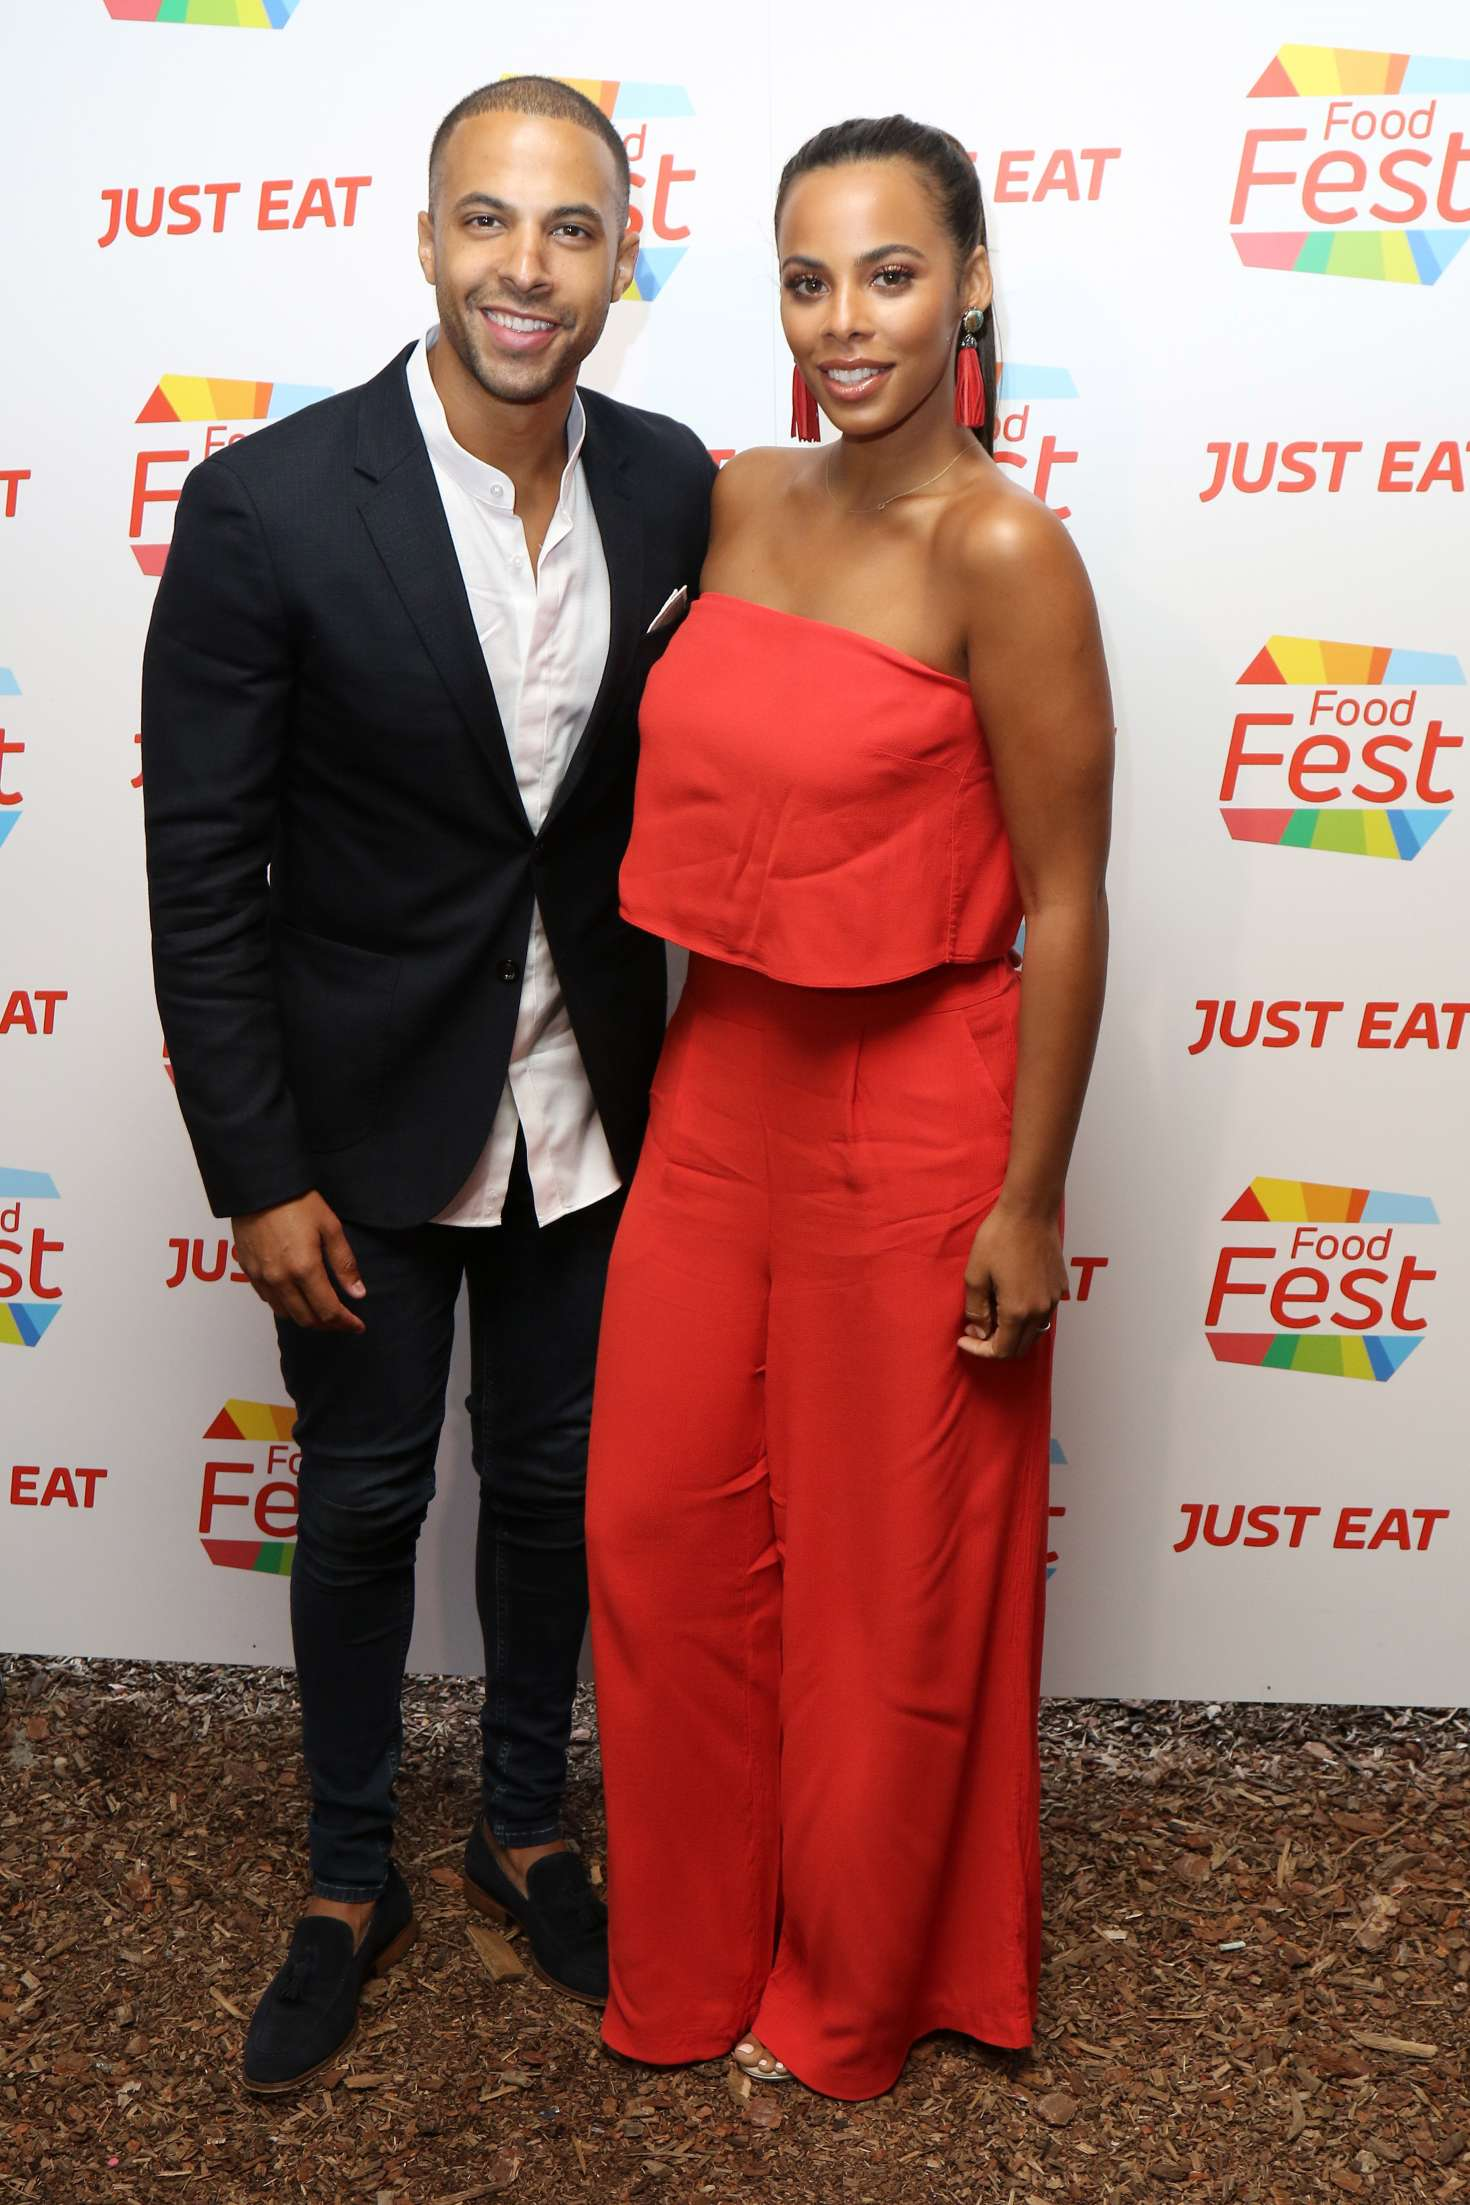 Shoreditch Market: Rochelle Humes: Just Eat Food Fest At The Red Market -13